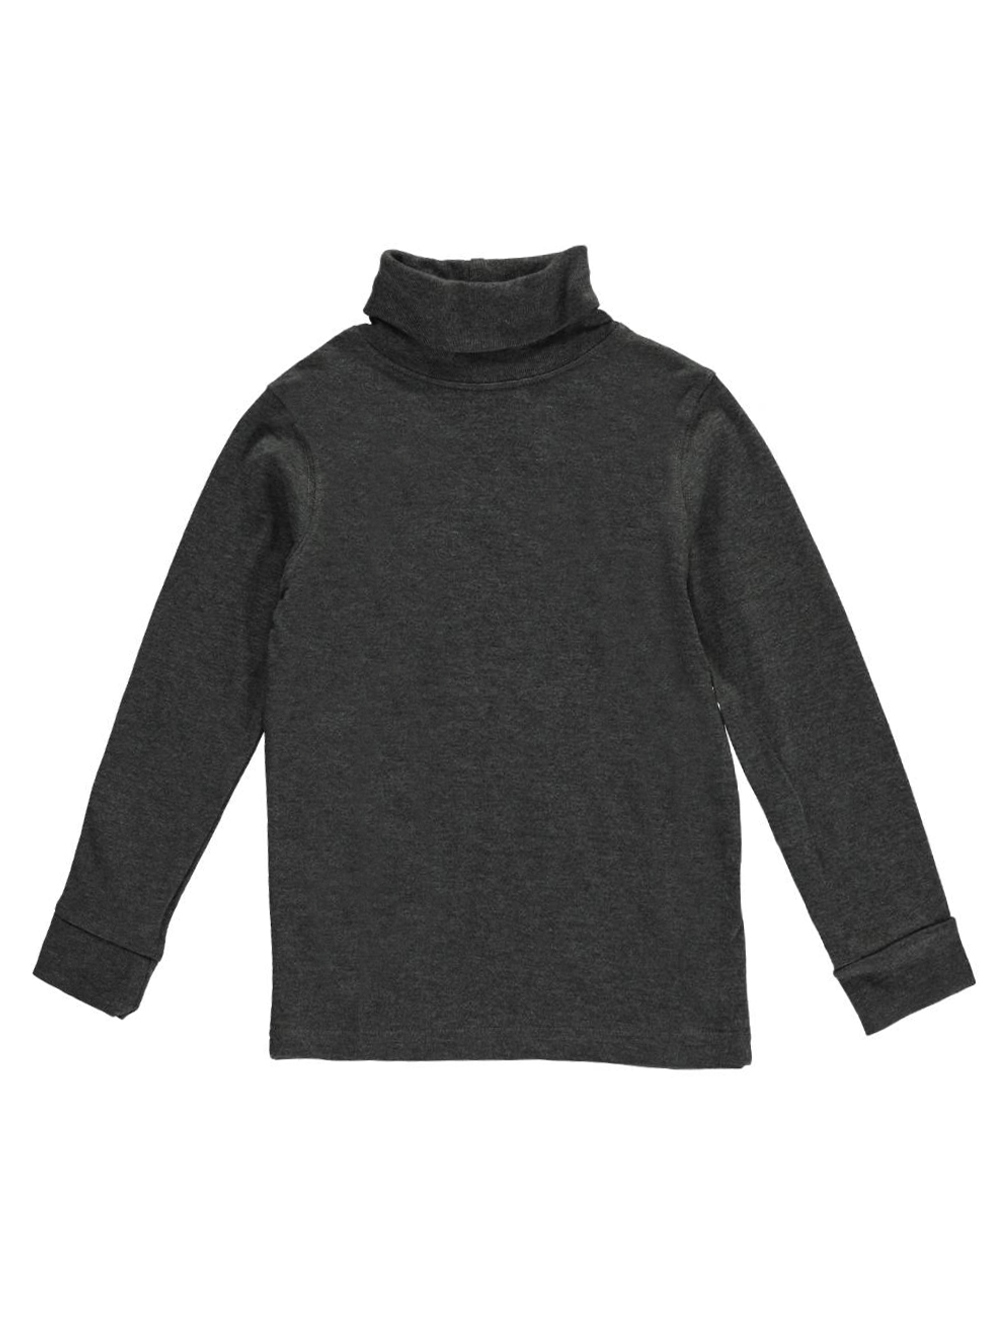 Image of French Toast Little Boys Toddler Basic Turtleneck Sizes 2T  4T  charcoal gray 2t